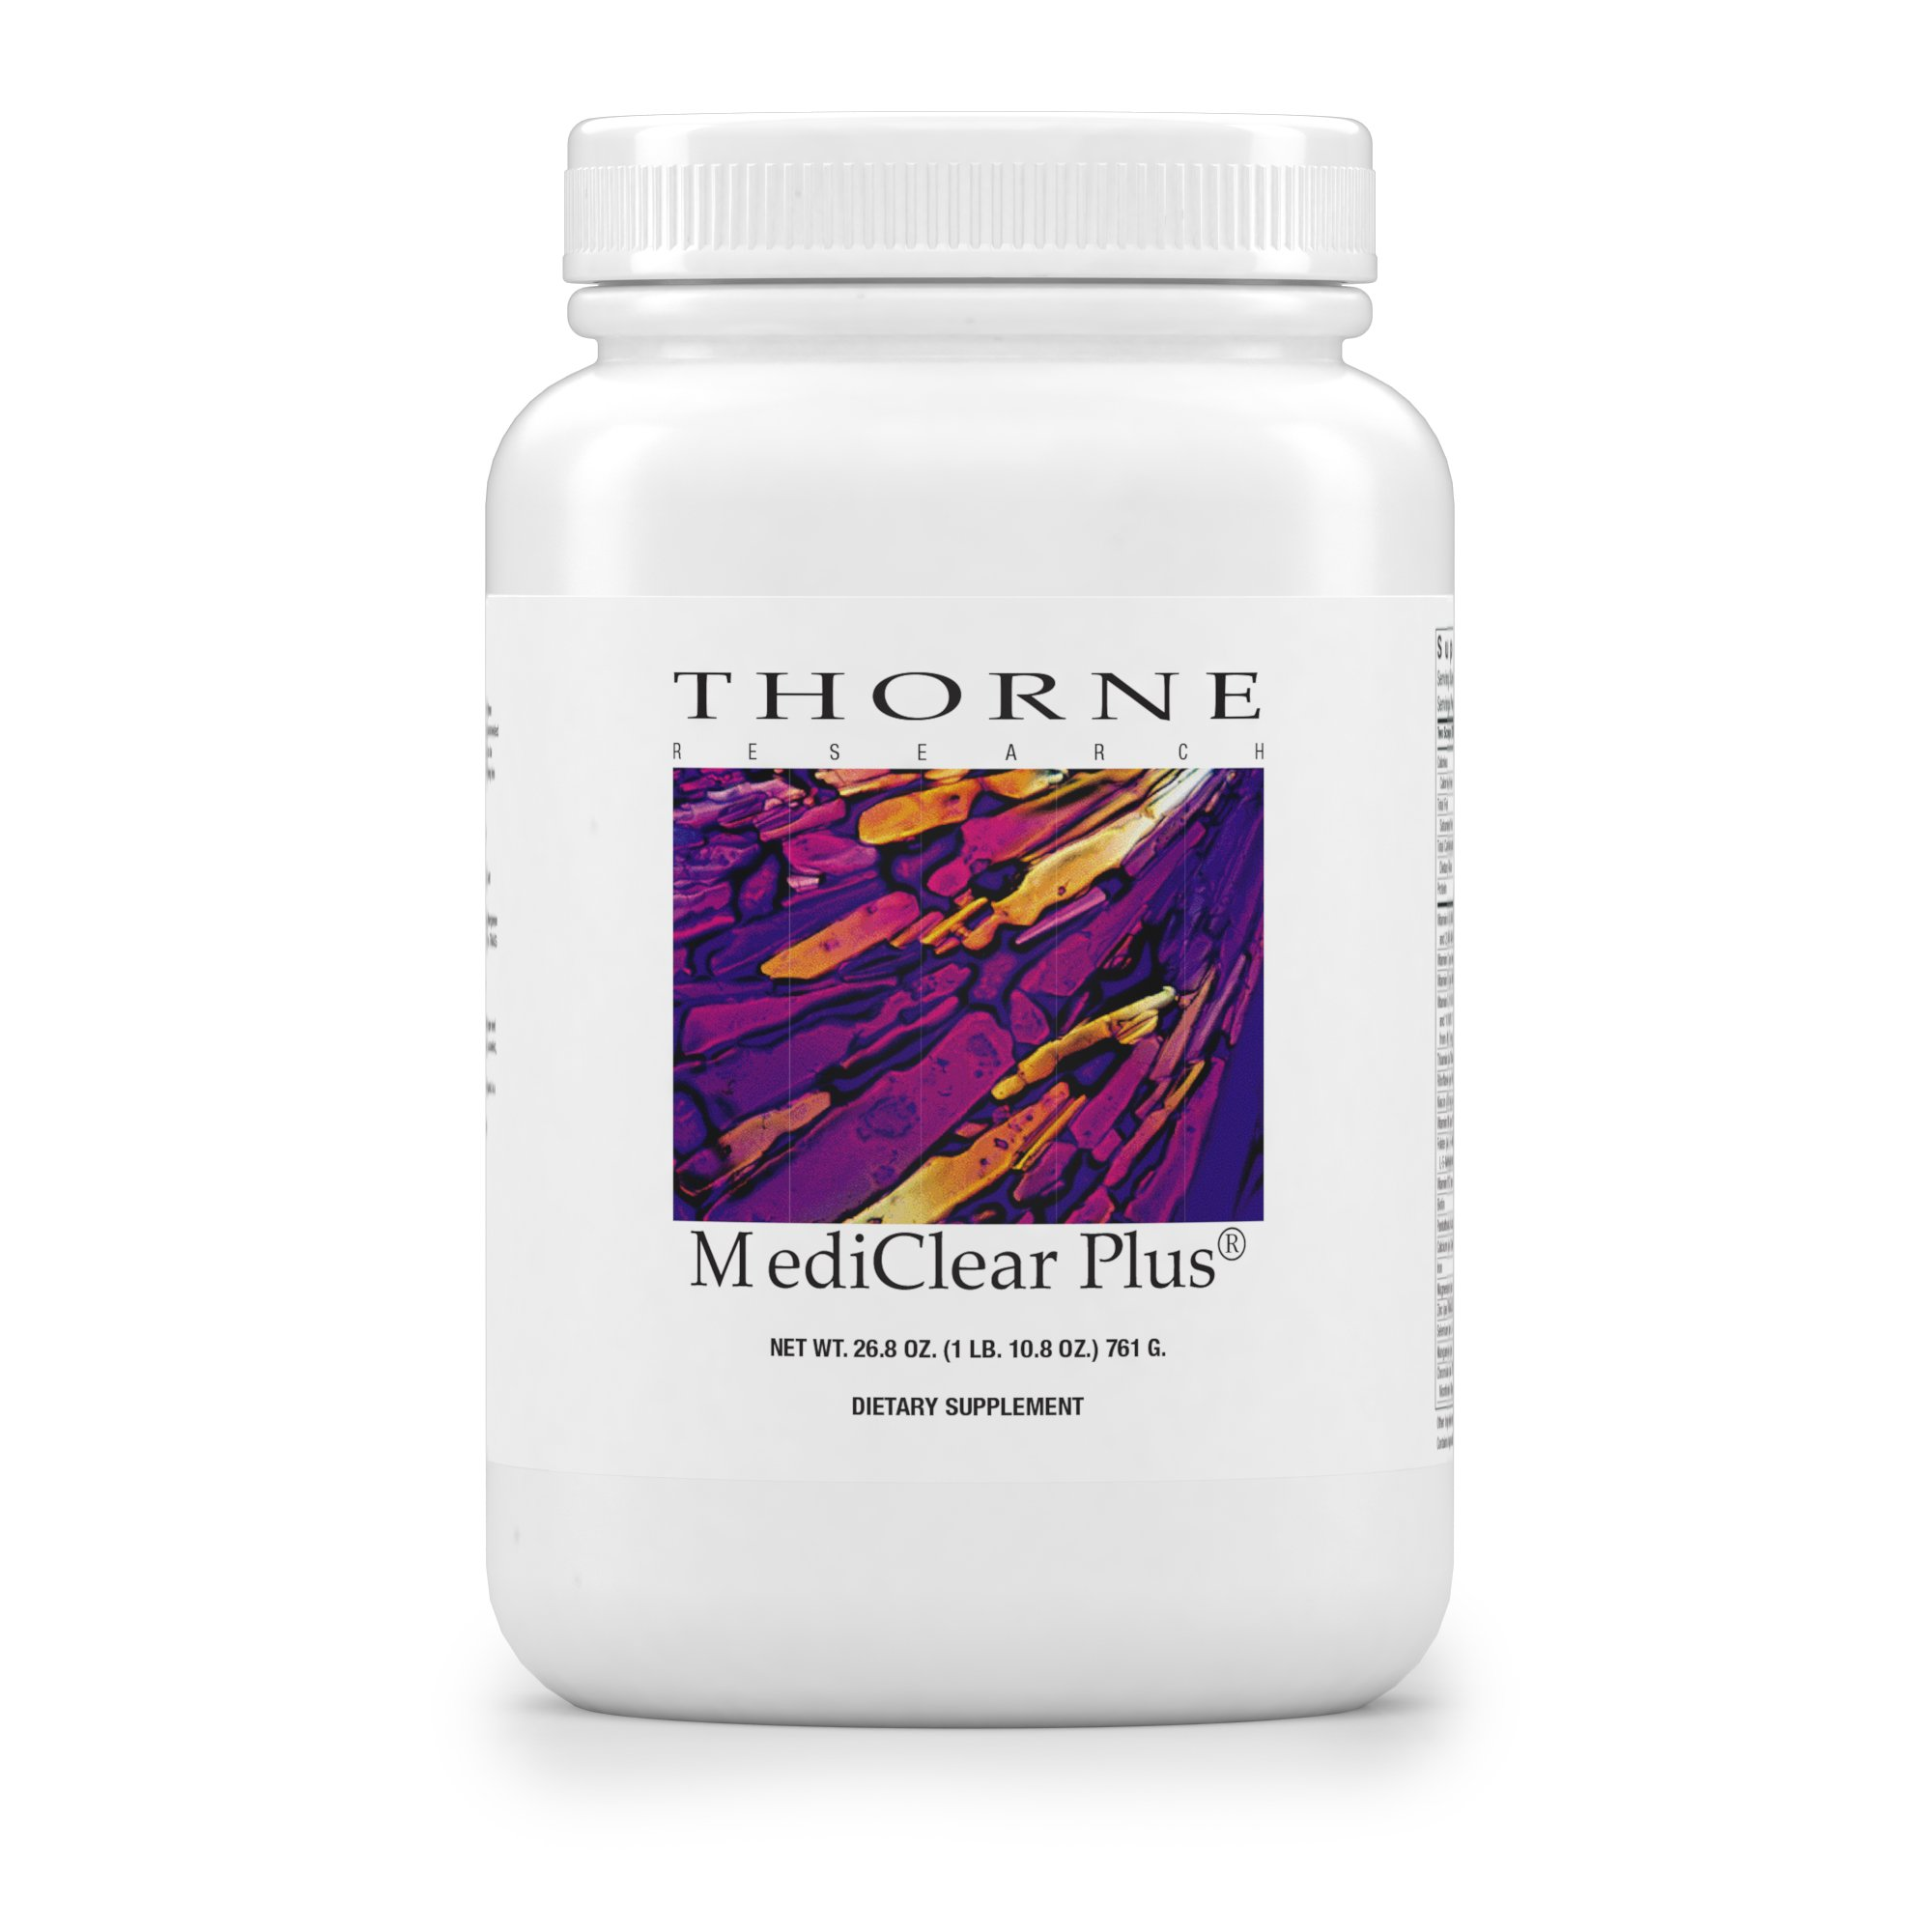 Thorne Research - MediClear Plus (Reformulated) - Detox, Cleanse, and Weight Management Support - Rice and Pea Protein-Based Drink Powder with a Complete Multivitamin-Mineral Profile - 26.8 oz